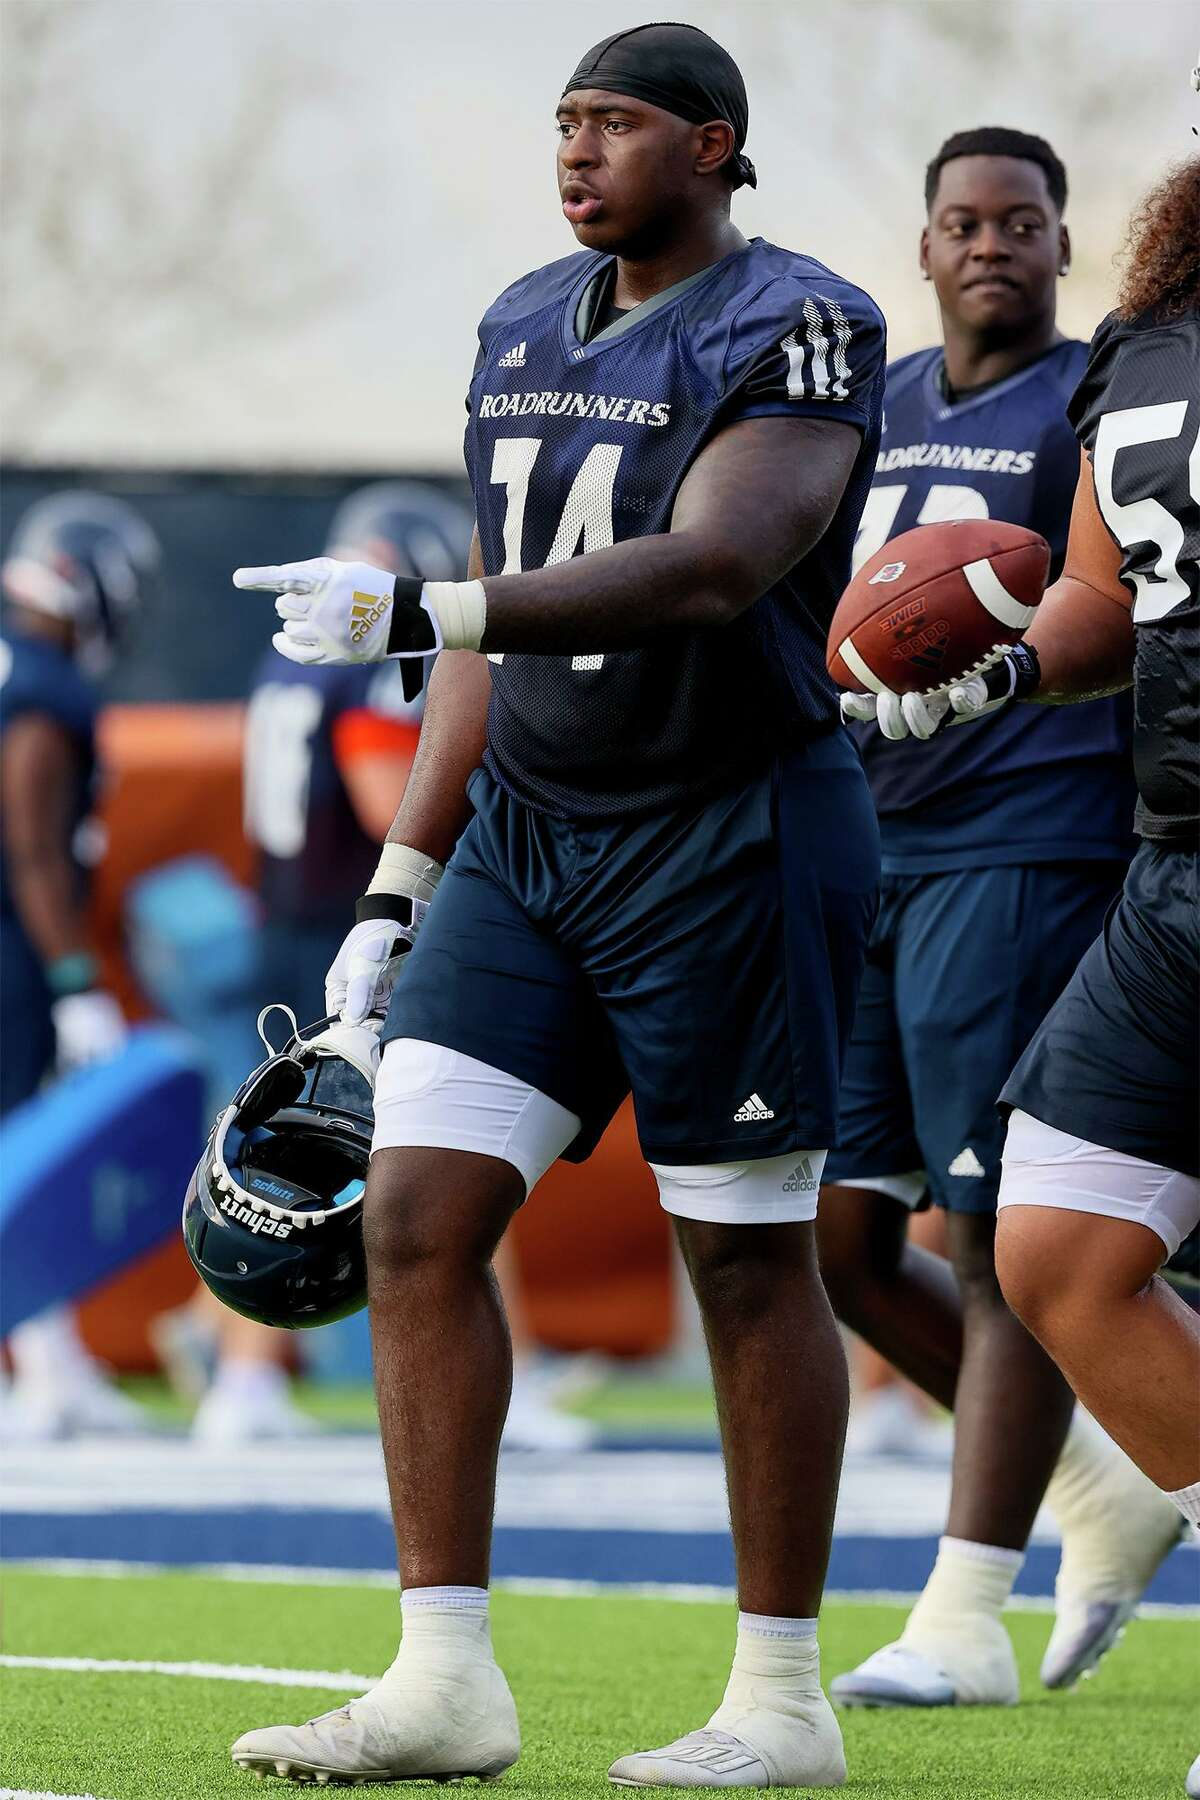 UTSA offensive lineman Spencer Burford, a senior from Wagner high school, during their first football practice of fall camp at the practice fields of the RACE facility on campus on Friday, Aug. 6, 2021.